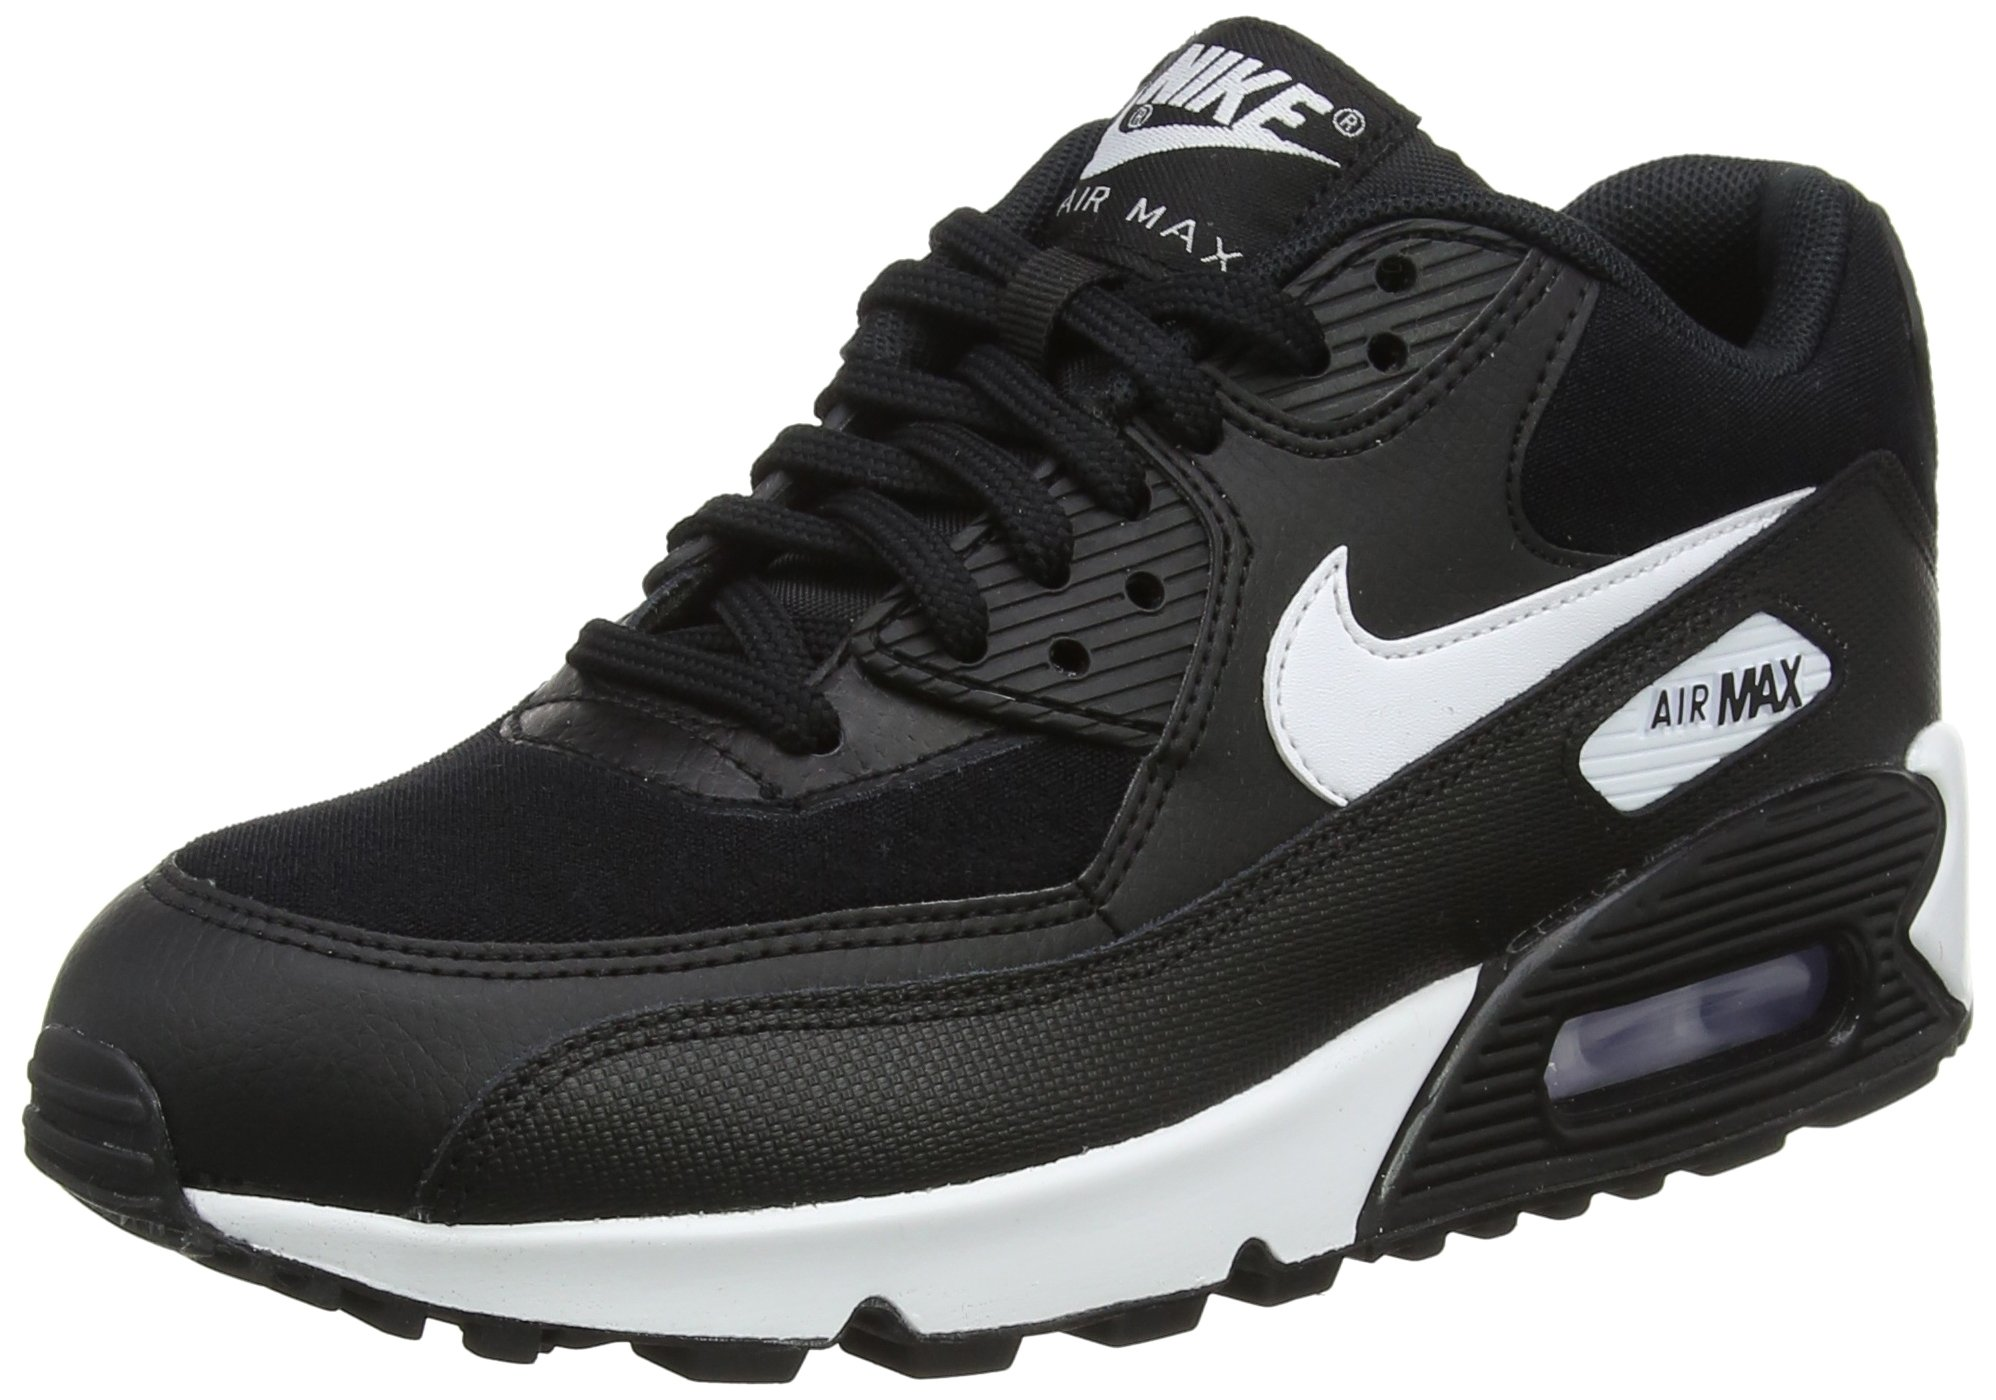 NIKE Women's Air Max 90 Black/White Running Shoe 8.5 Women US